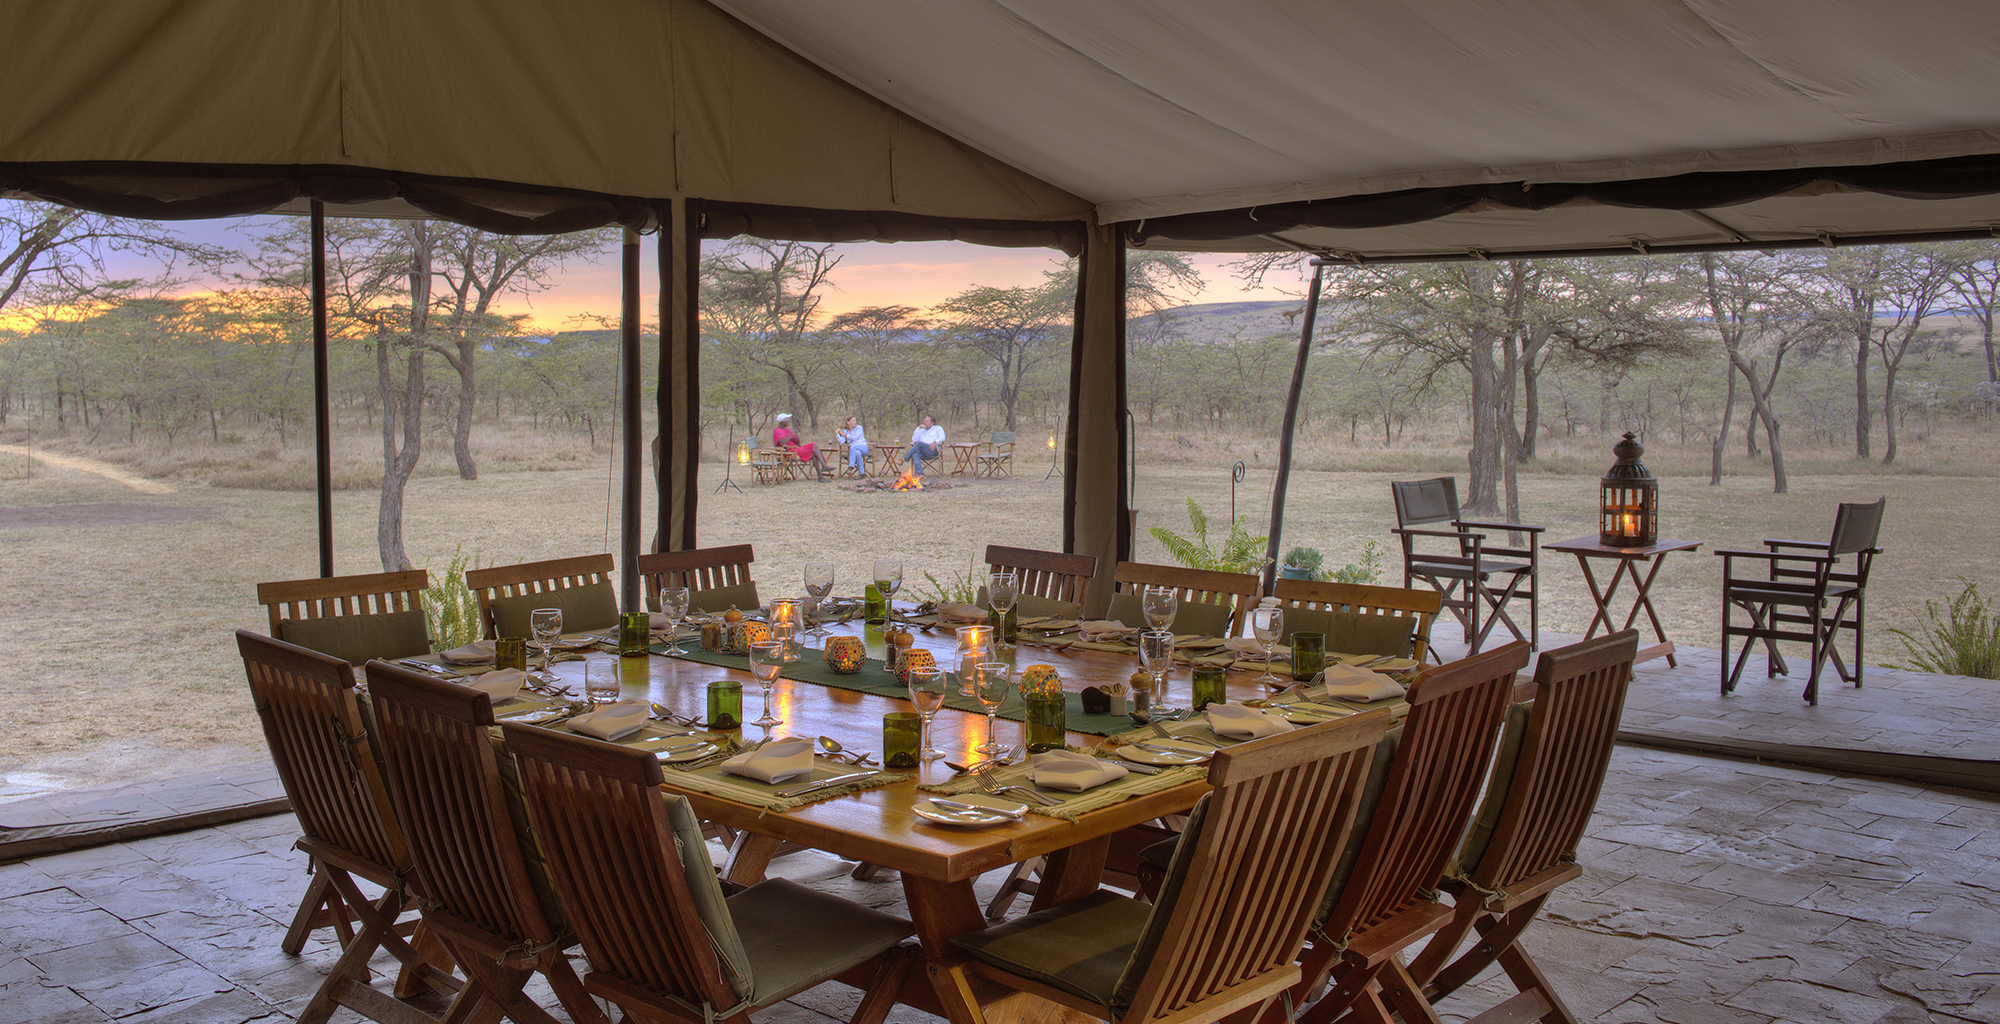 Kenya-Kicheche-Bush-Camp-Dining